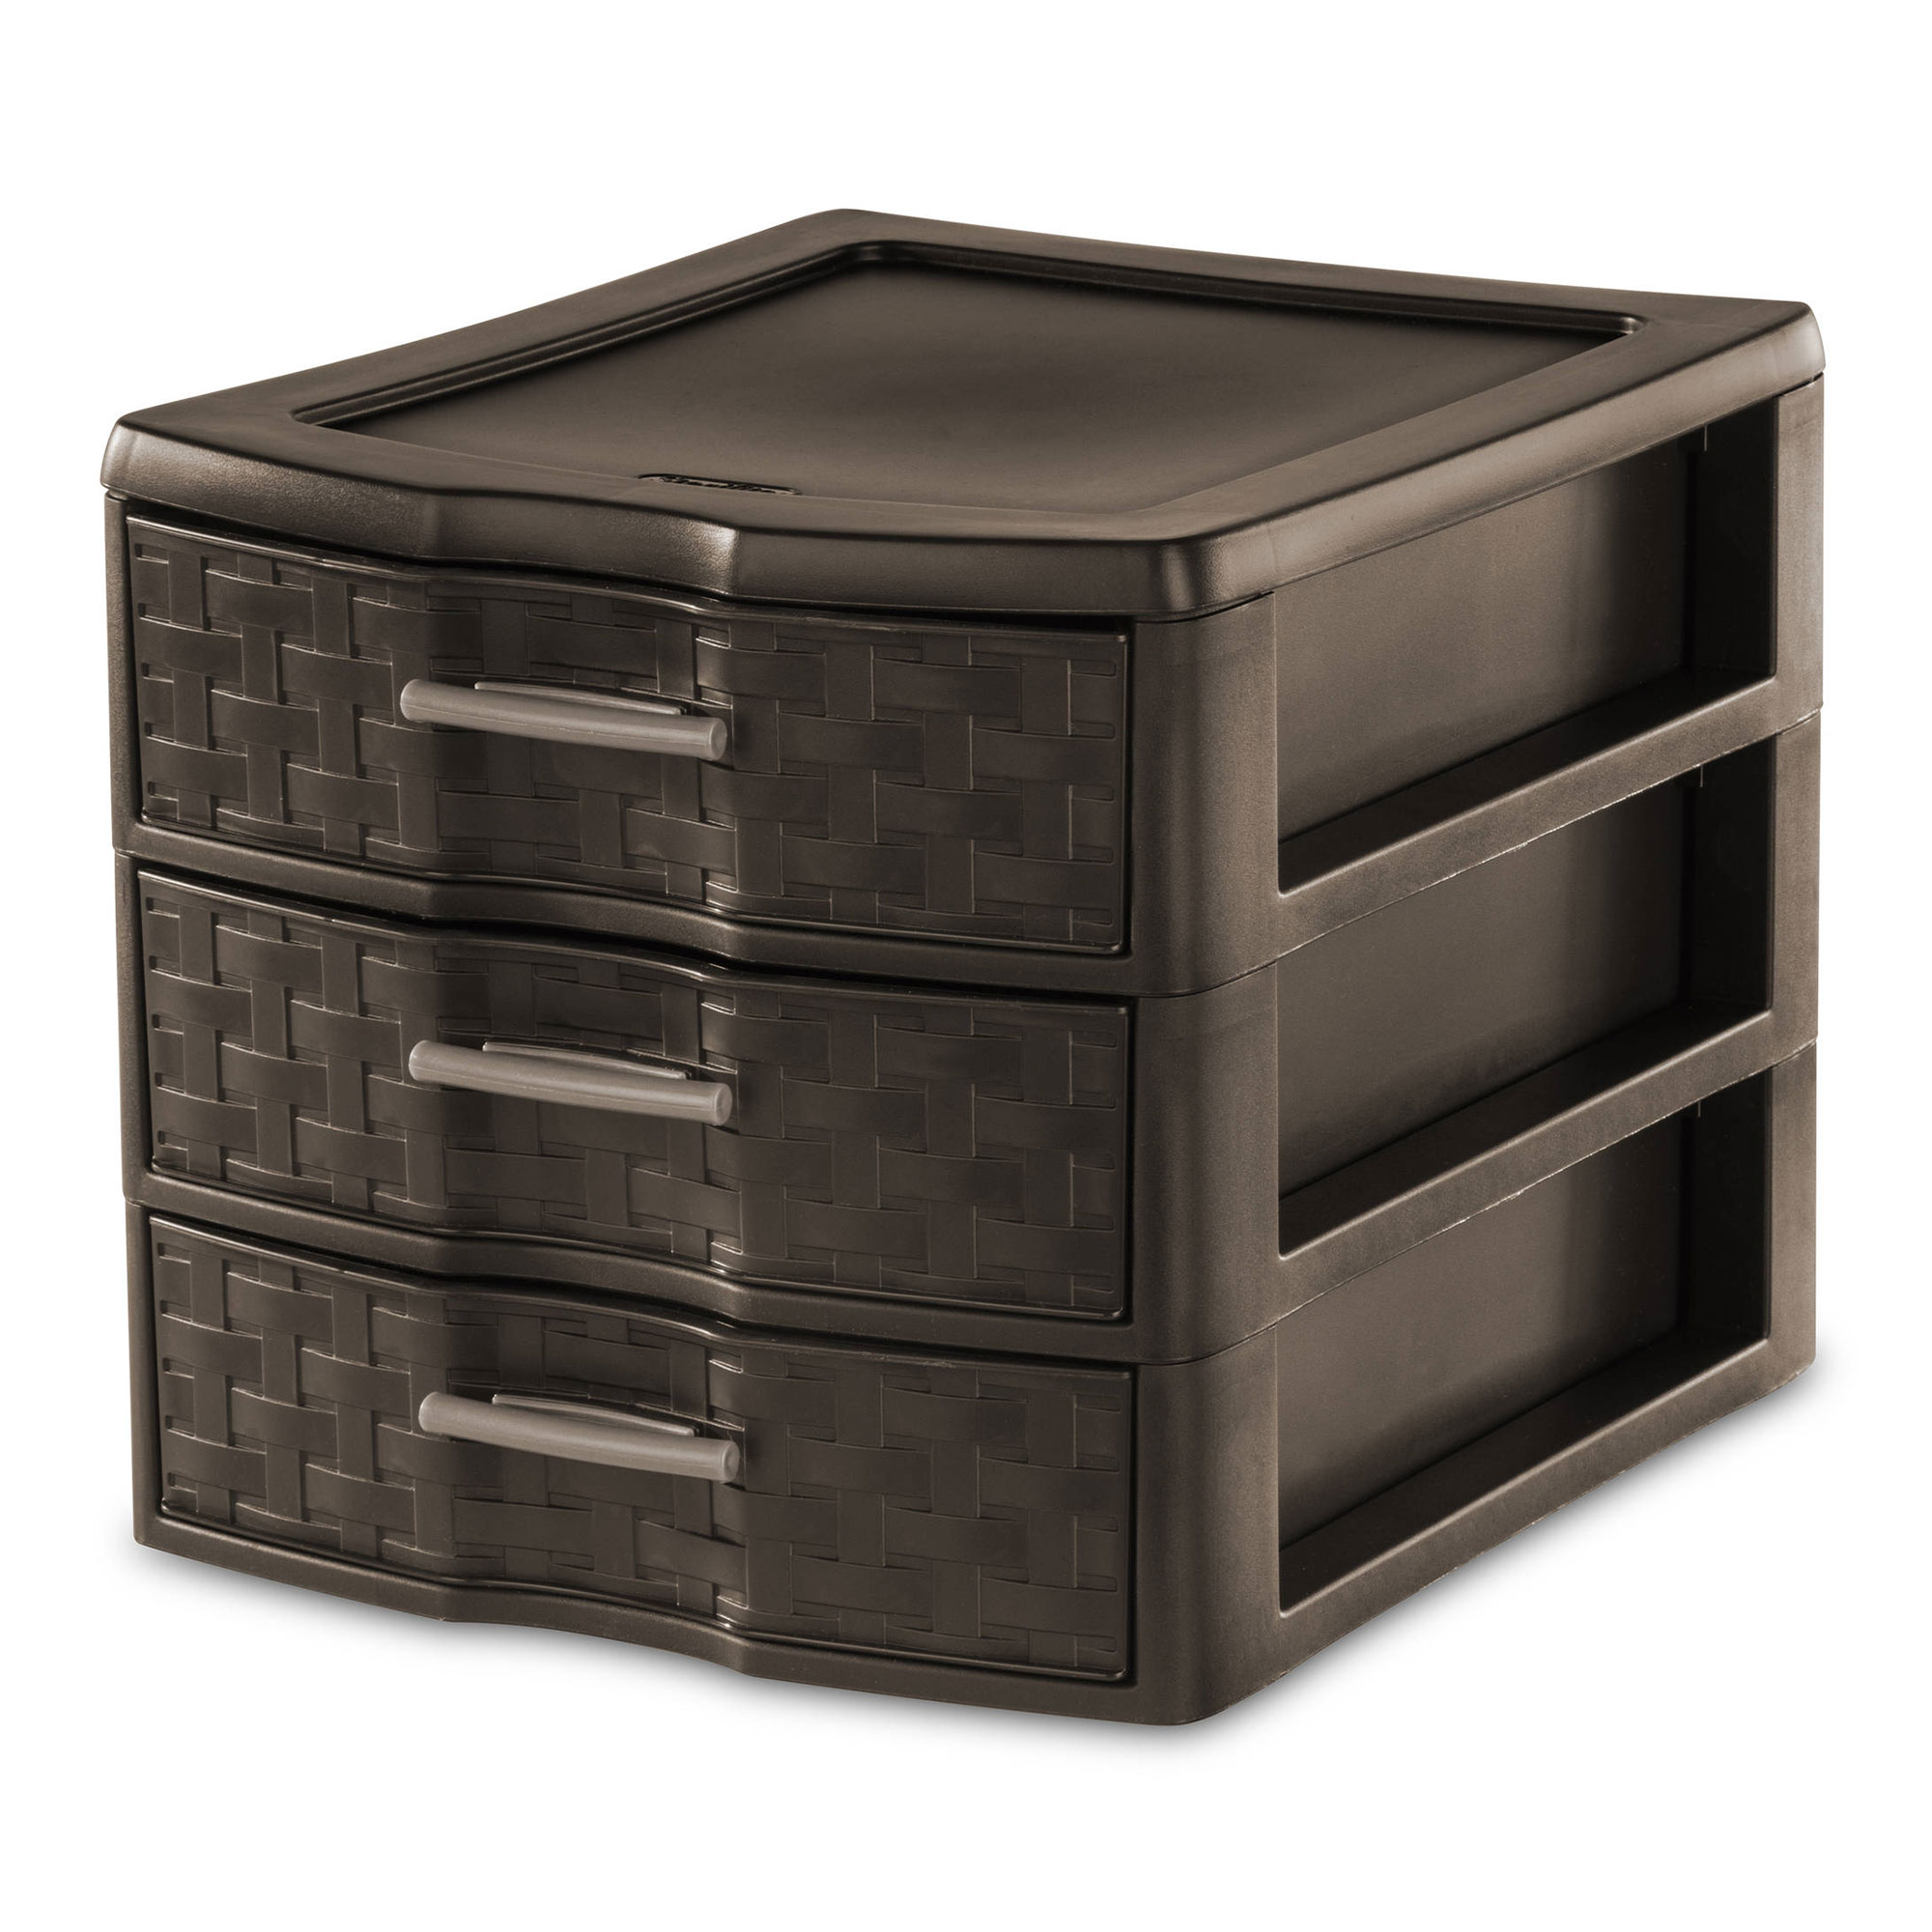 organizer drawers storage amazon com dresser sweaters drawer nursery clothing jeans mdesign dp unit blankets for fabric